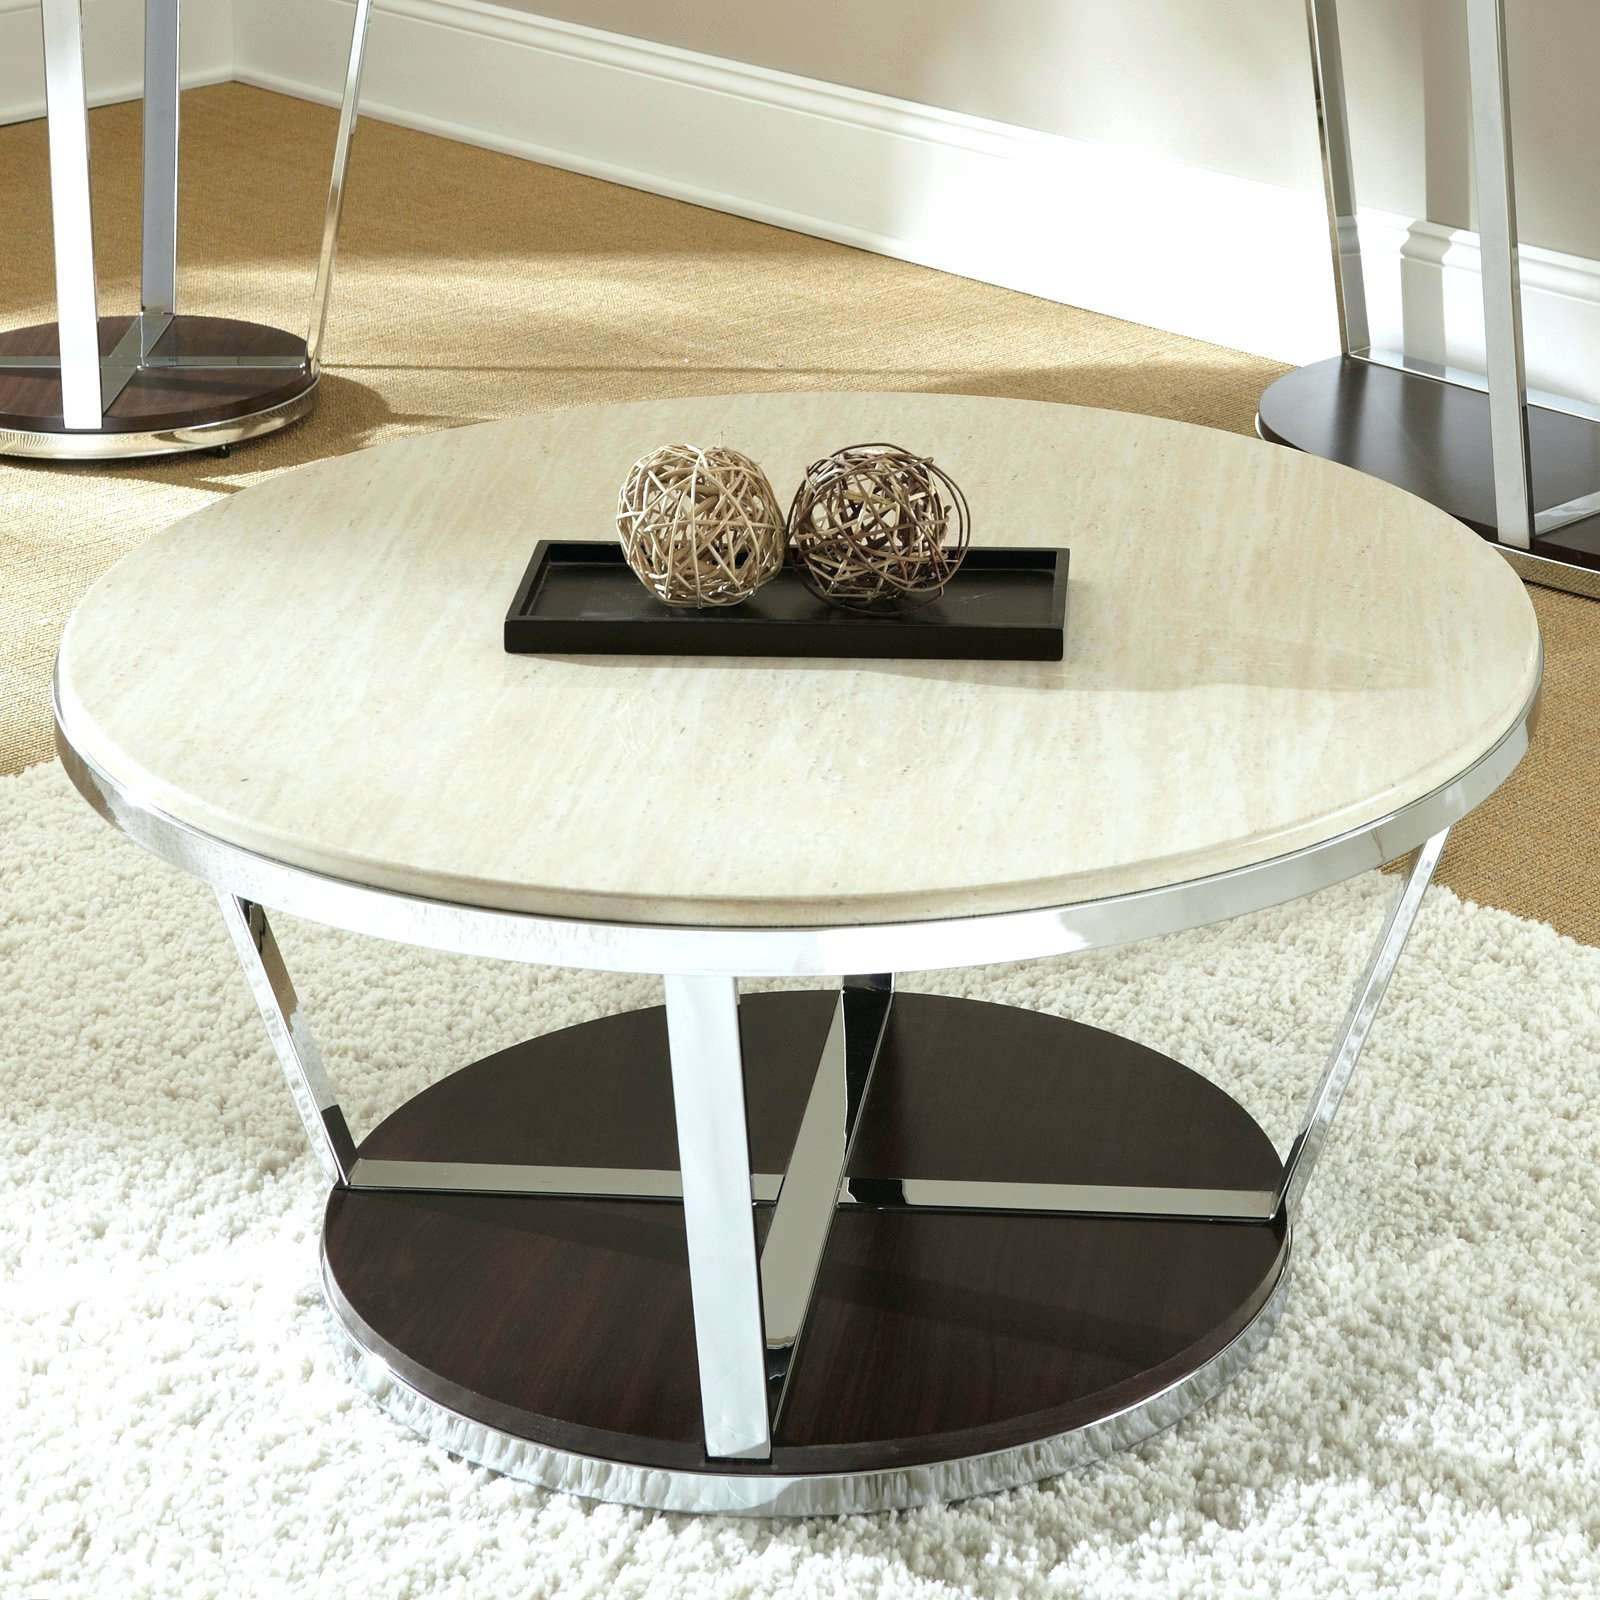 Trendy Marble And Metal Coffee Tables Within Coffee Tables : Round Wood Coffee Table With Shelf Marble Top (View 15 of 20)